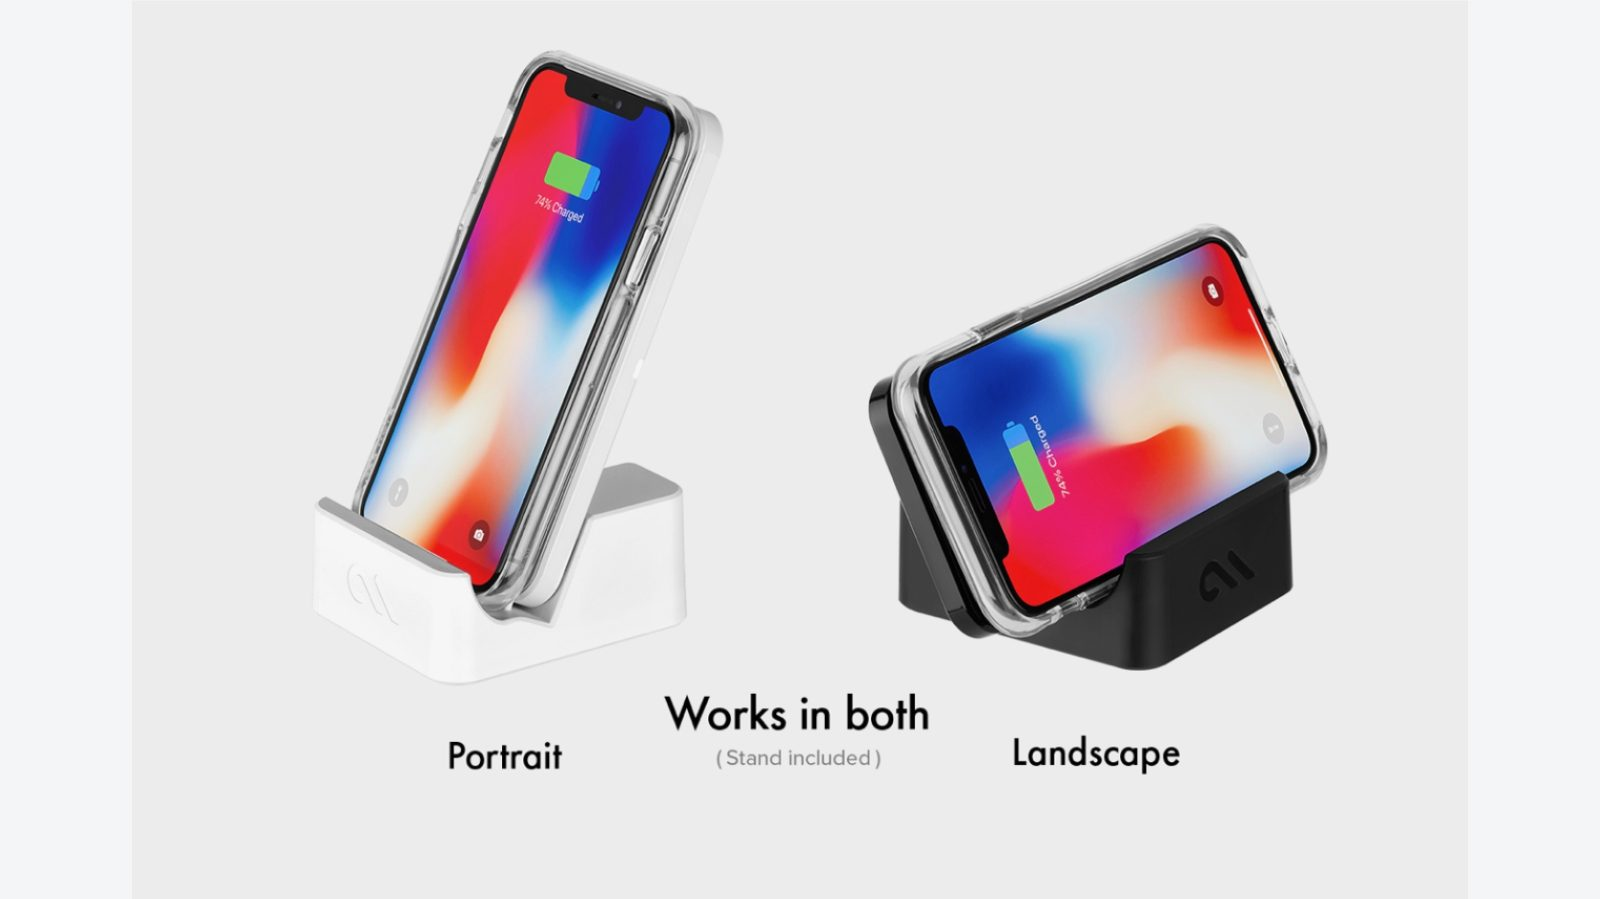 All Iphone Wallpapers App Holder: Case-Mate Launches 9W Qi Power Pad Wireless Charger With